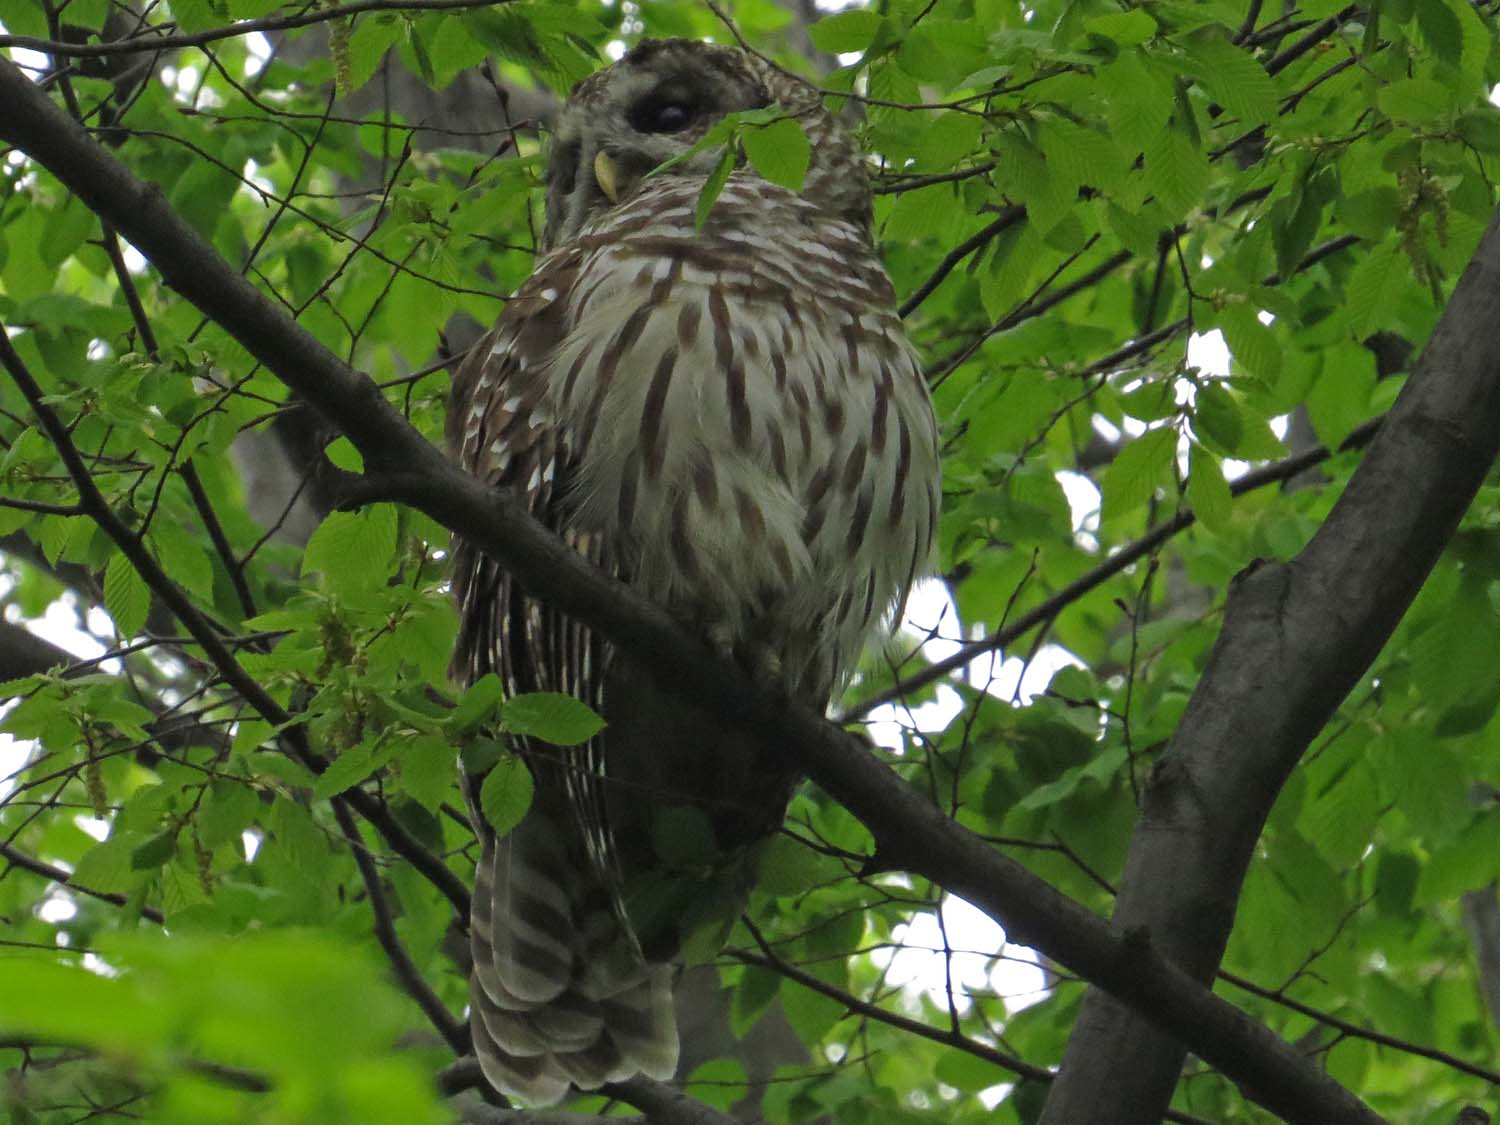 Shakespeare, a barred owl in the Ramble, April 26, 2017